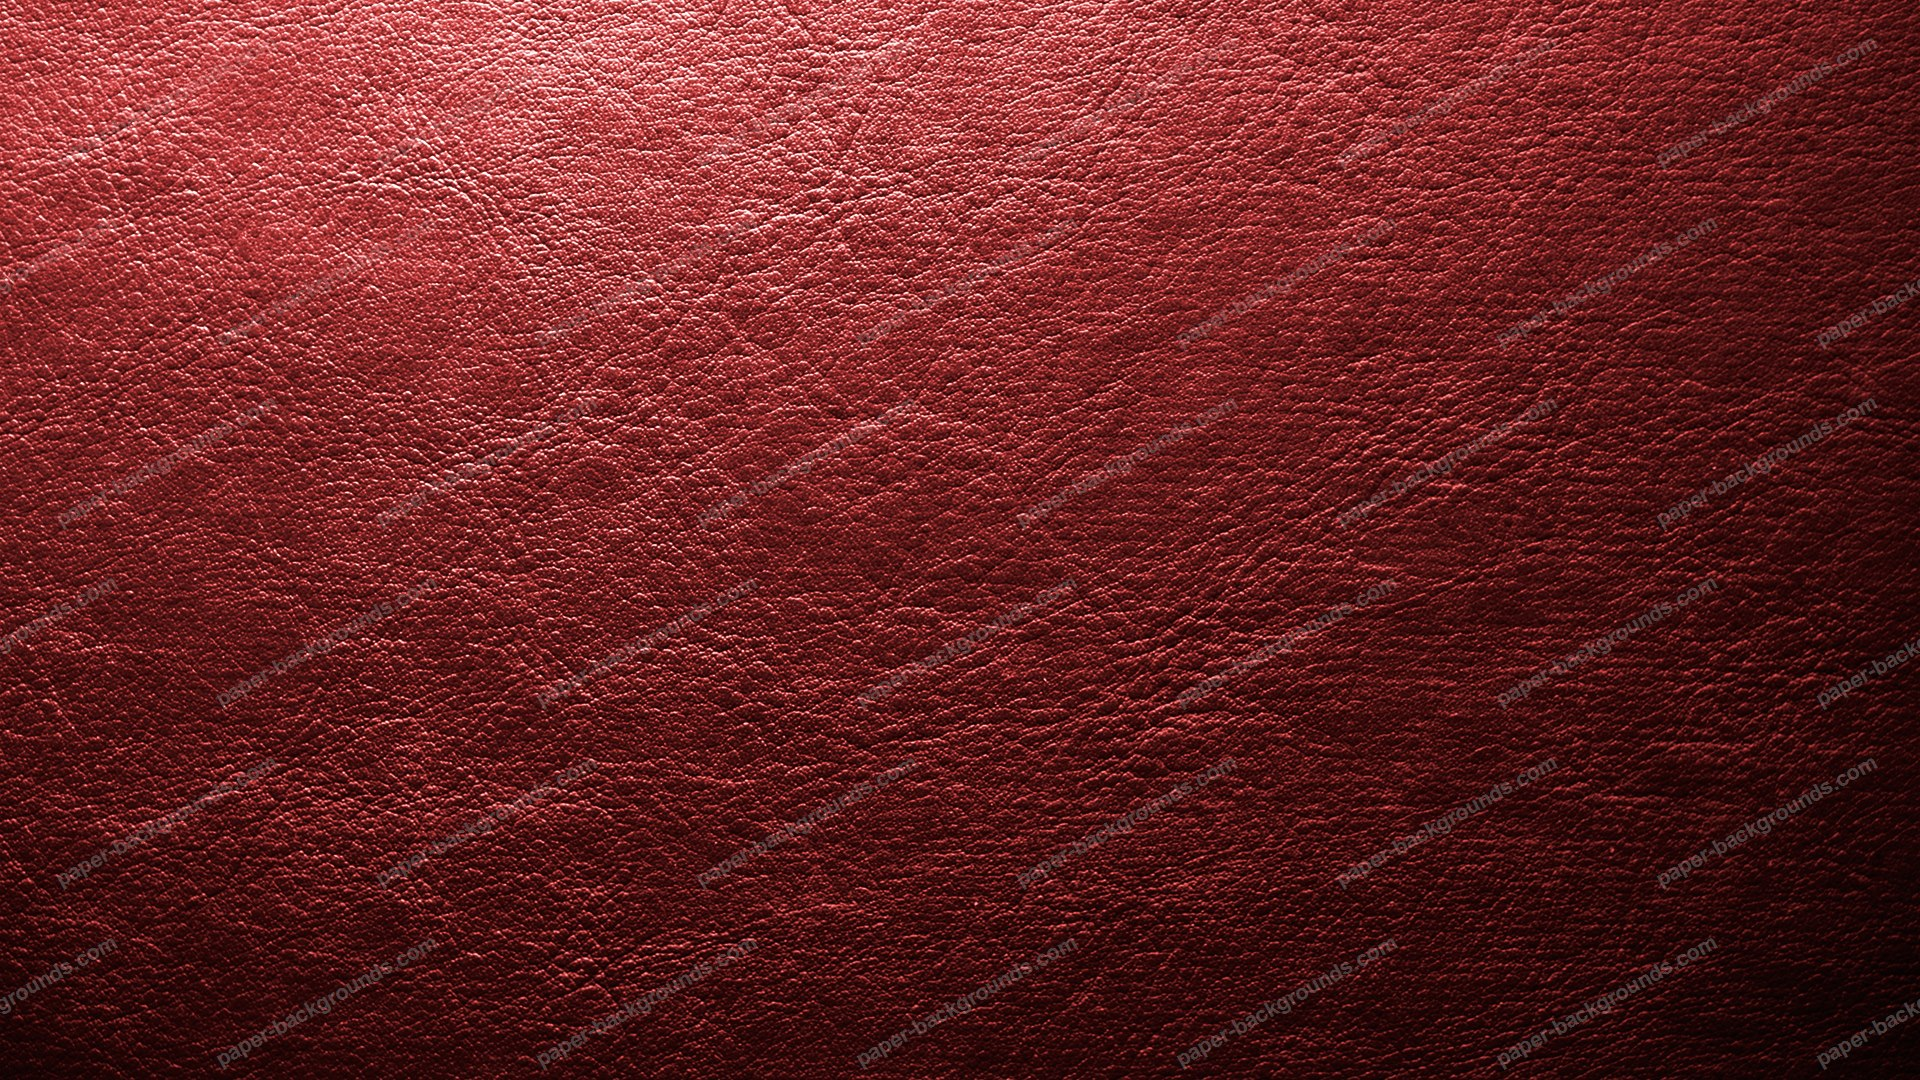 red textured background hd - photo #9